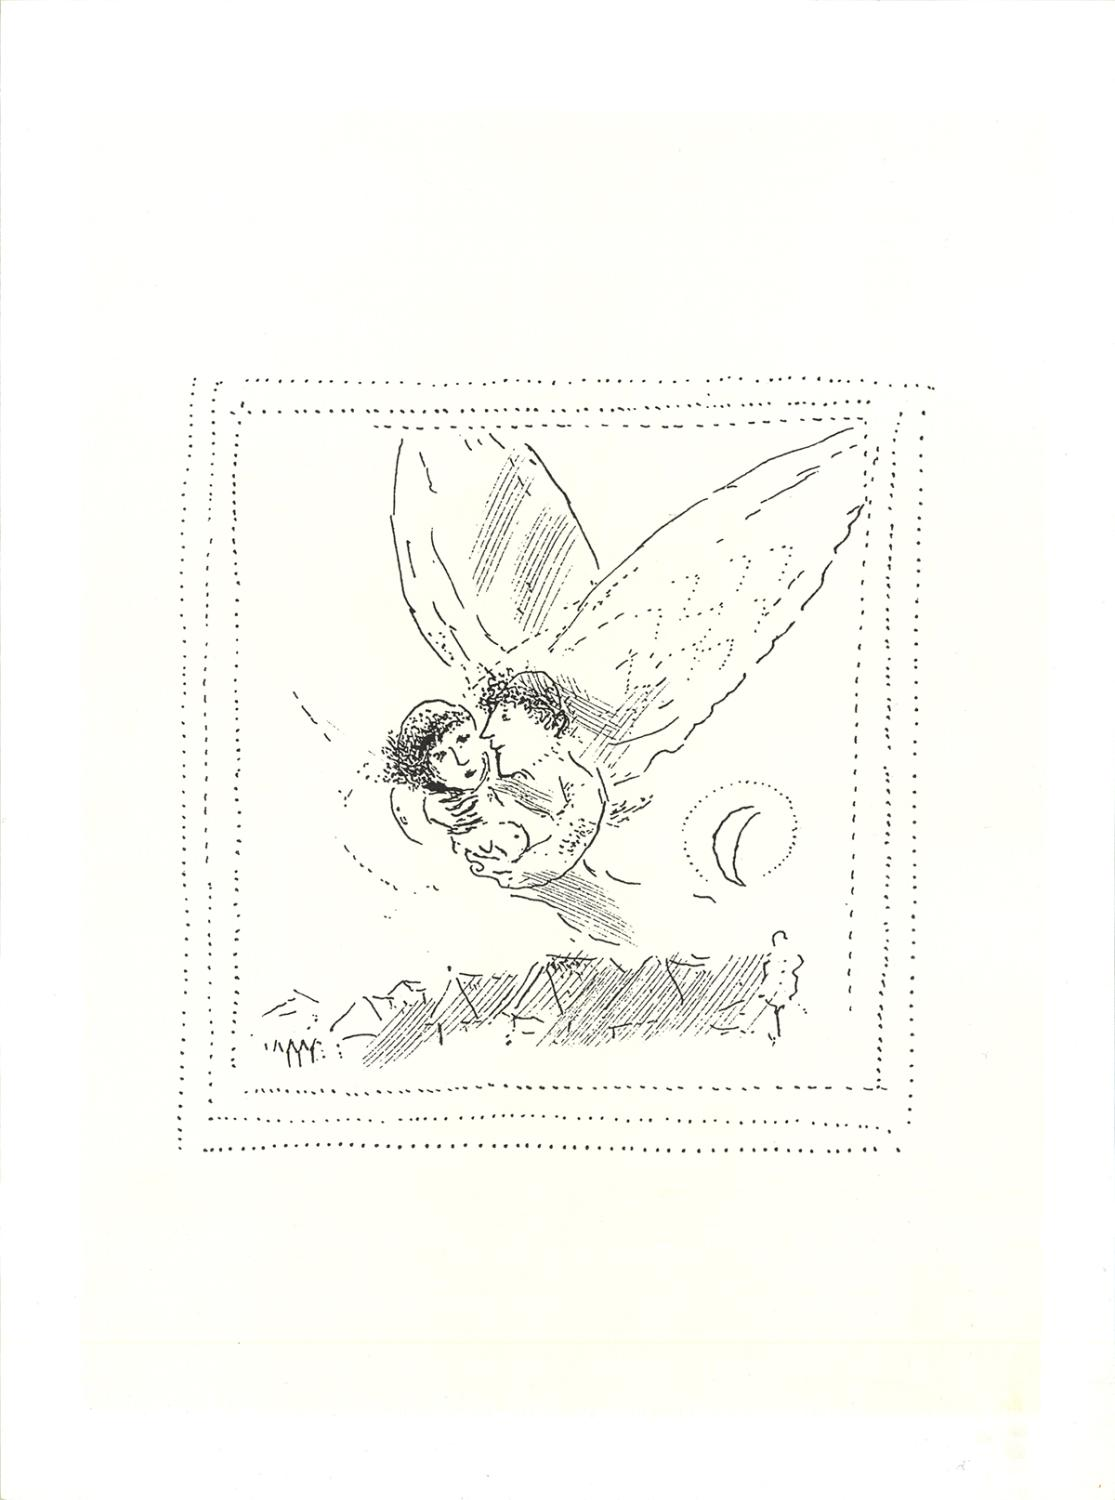 Marc Chagall-Aaron's Wedding-1999 Serigraph by Chagall